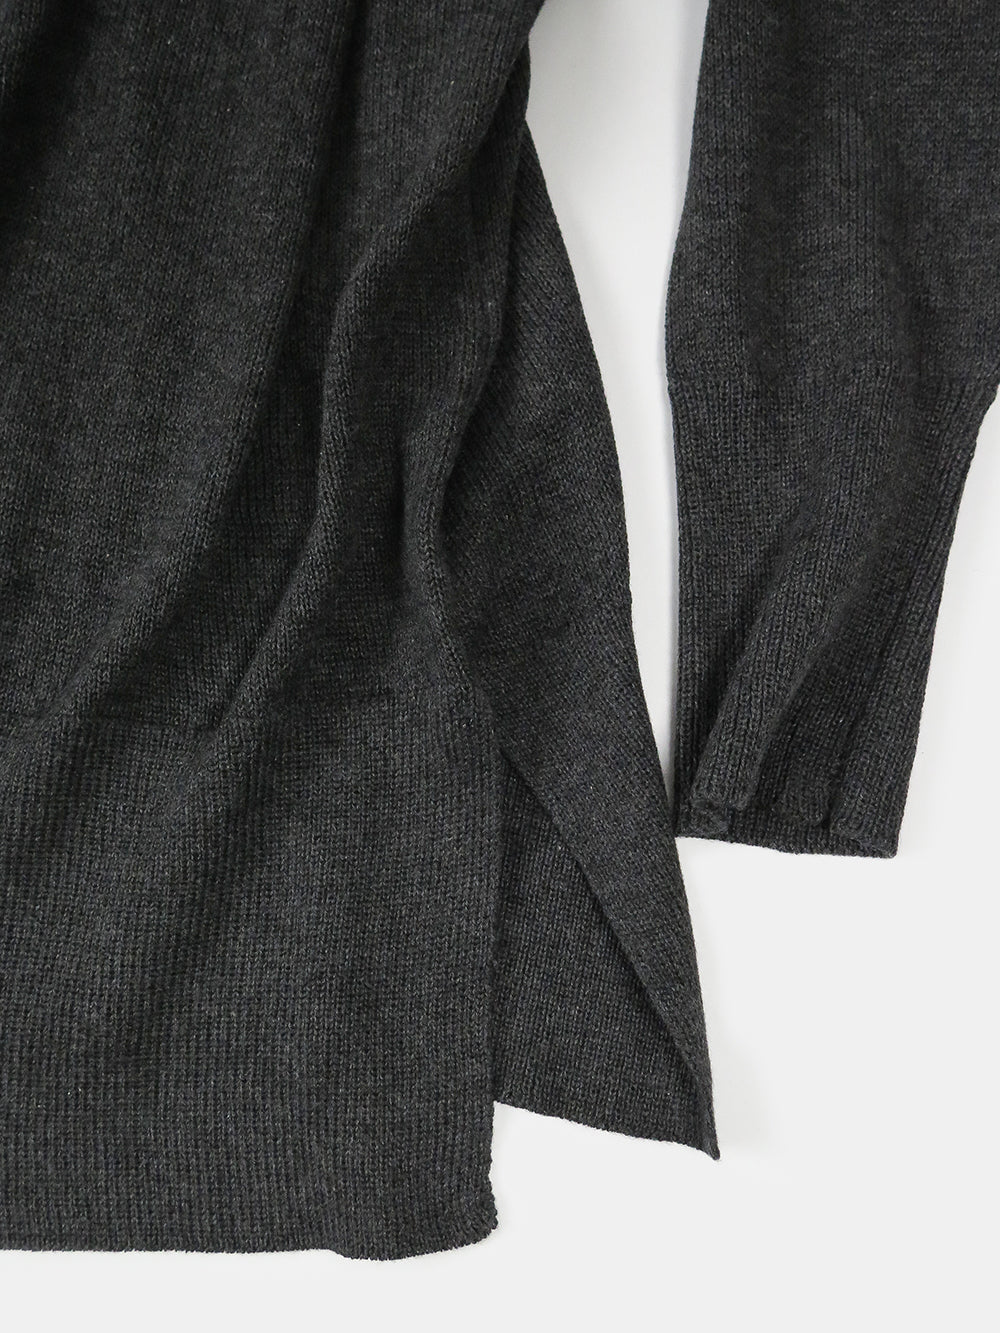 fine knit cotton v-neck in charcoal